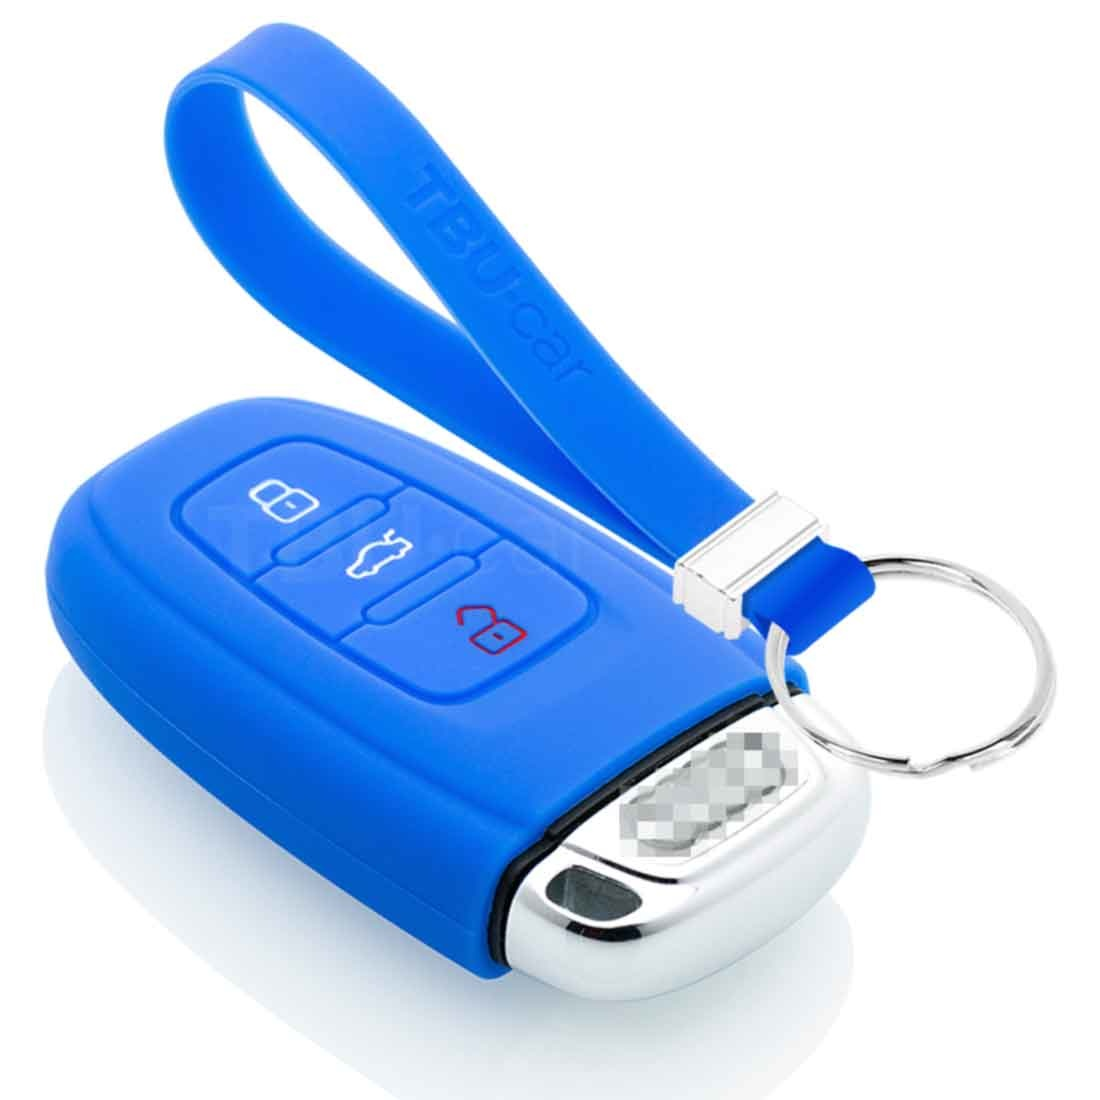 TBU car TBU car Car key cover compatible with Audi - Silicone Protective Remote Key Shell - FOB Case Cover - Blue